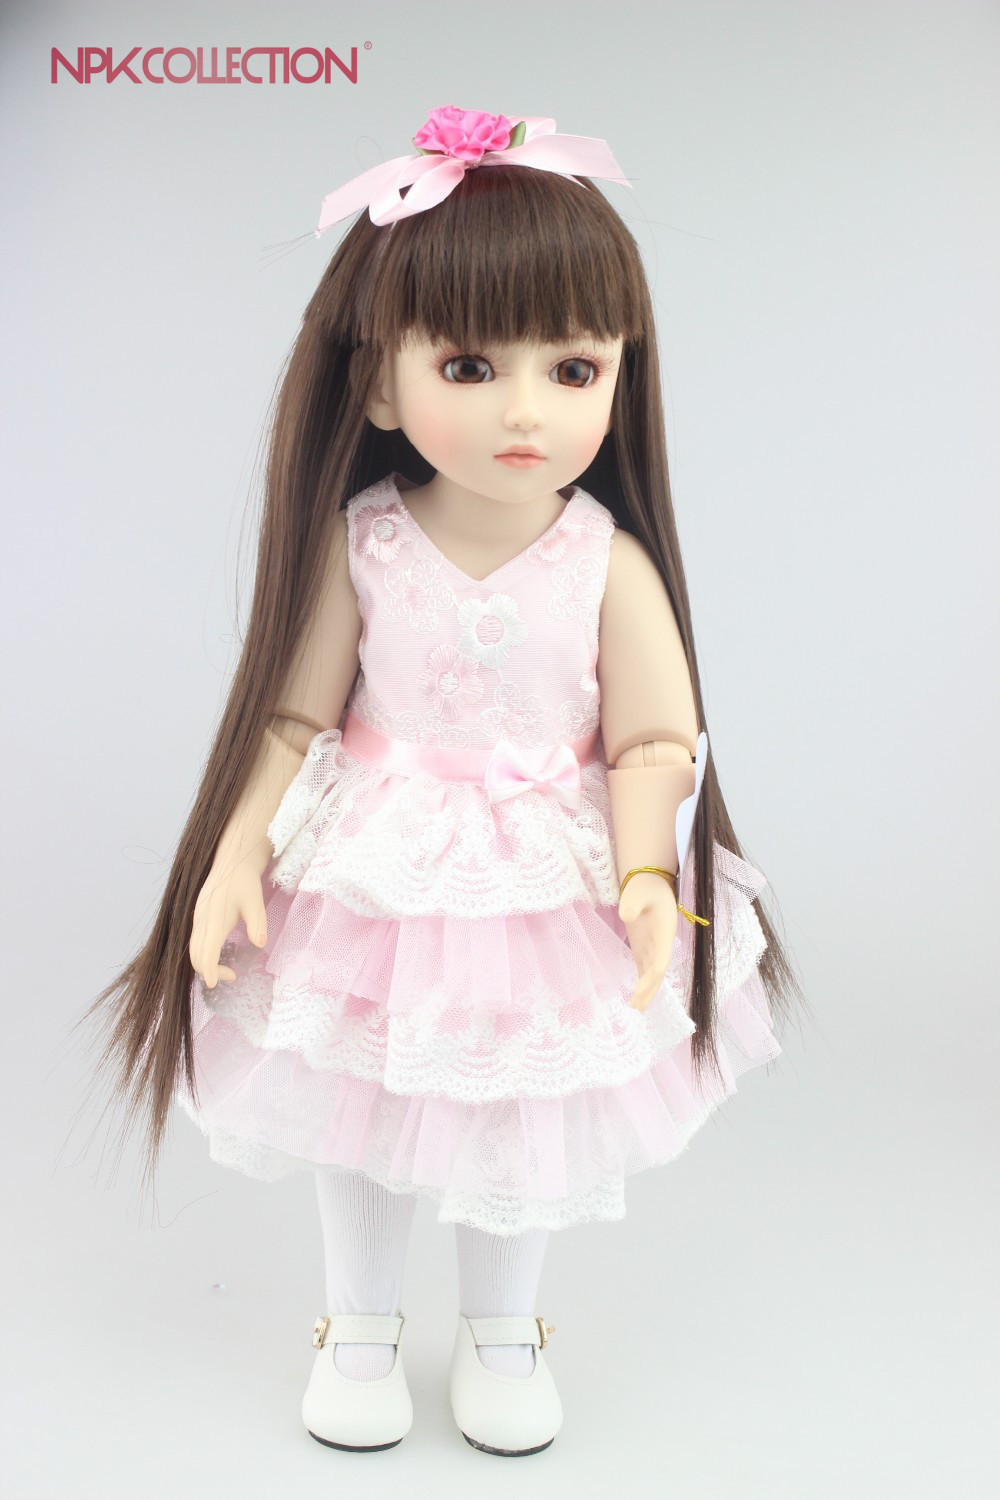 NPKCOLLECTION NEW Design Beautiful SD/BJD doll with cute pink skirt handmade doll high quailty popular gift for your children handsome grey woolen coat belt for bjd 1 3 sd10 sd13 sd17 uncle ssdf sd luts dod dz as doll clothes cmb107